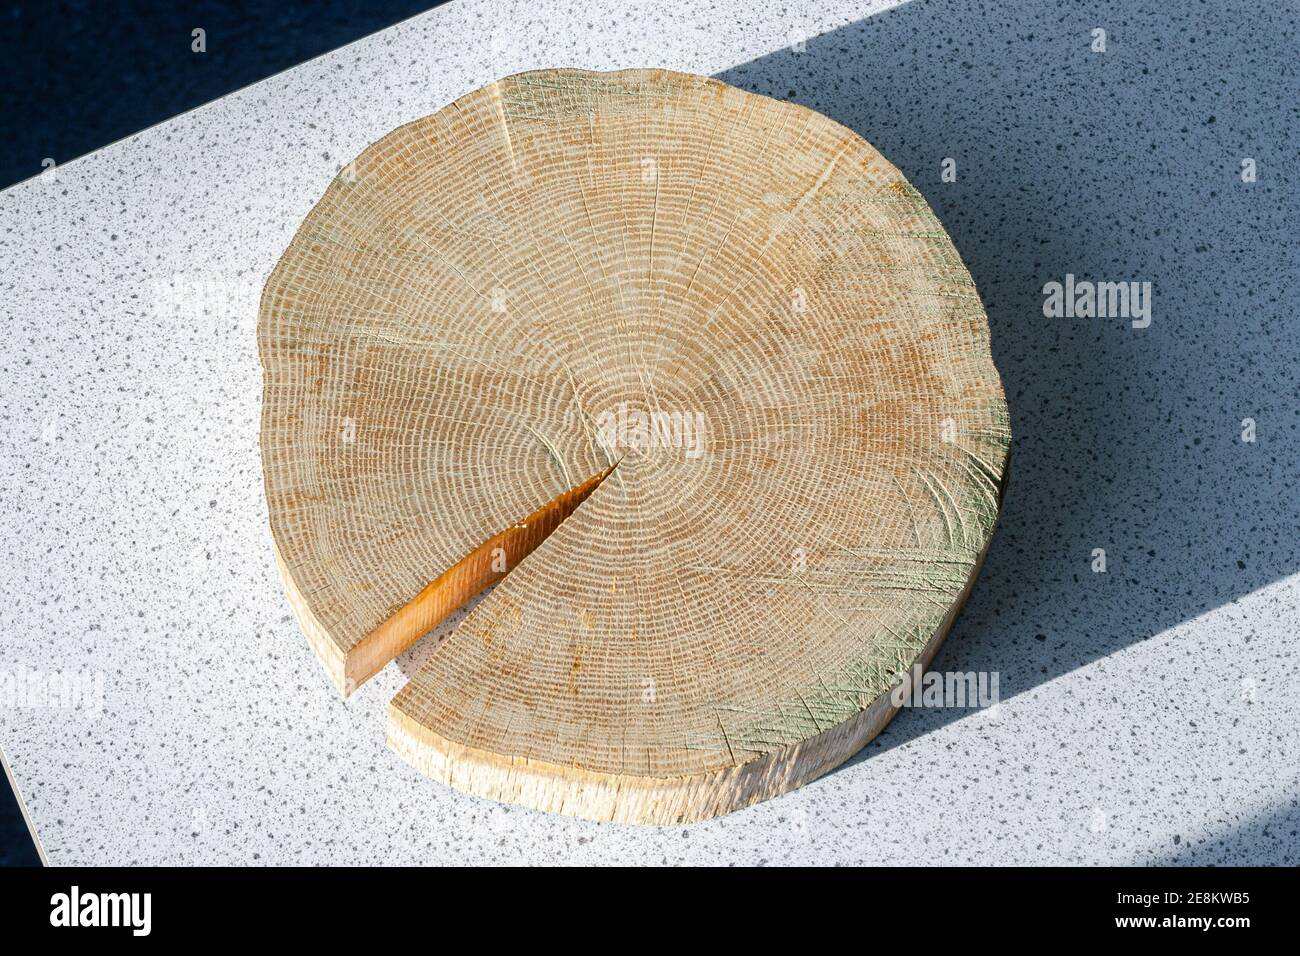 Cross section of the trunk of a tree, clearly showing the annual rings Stock Photo